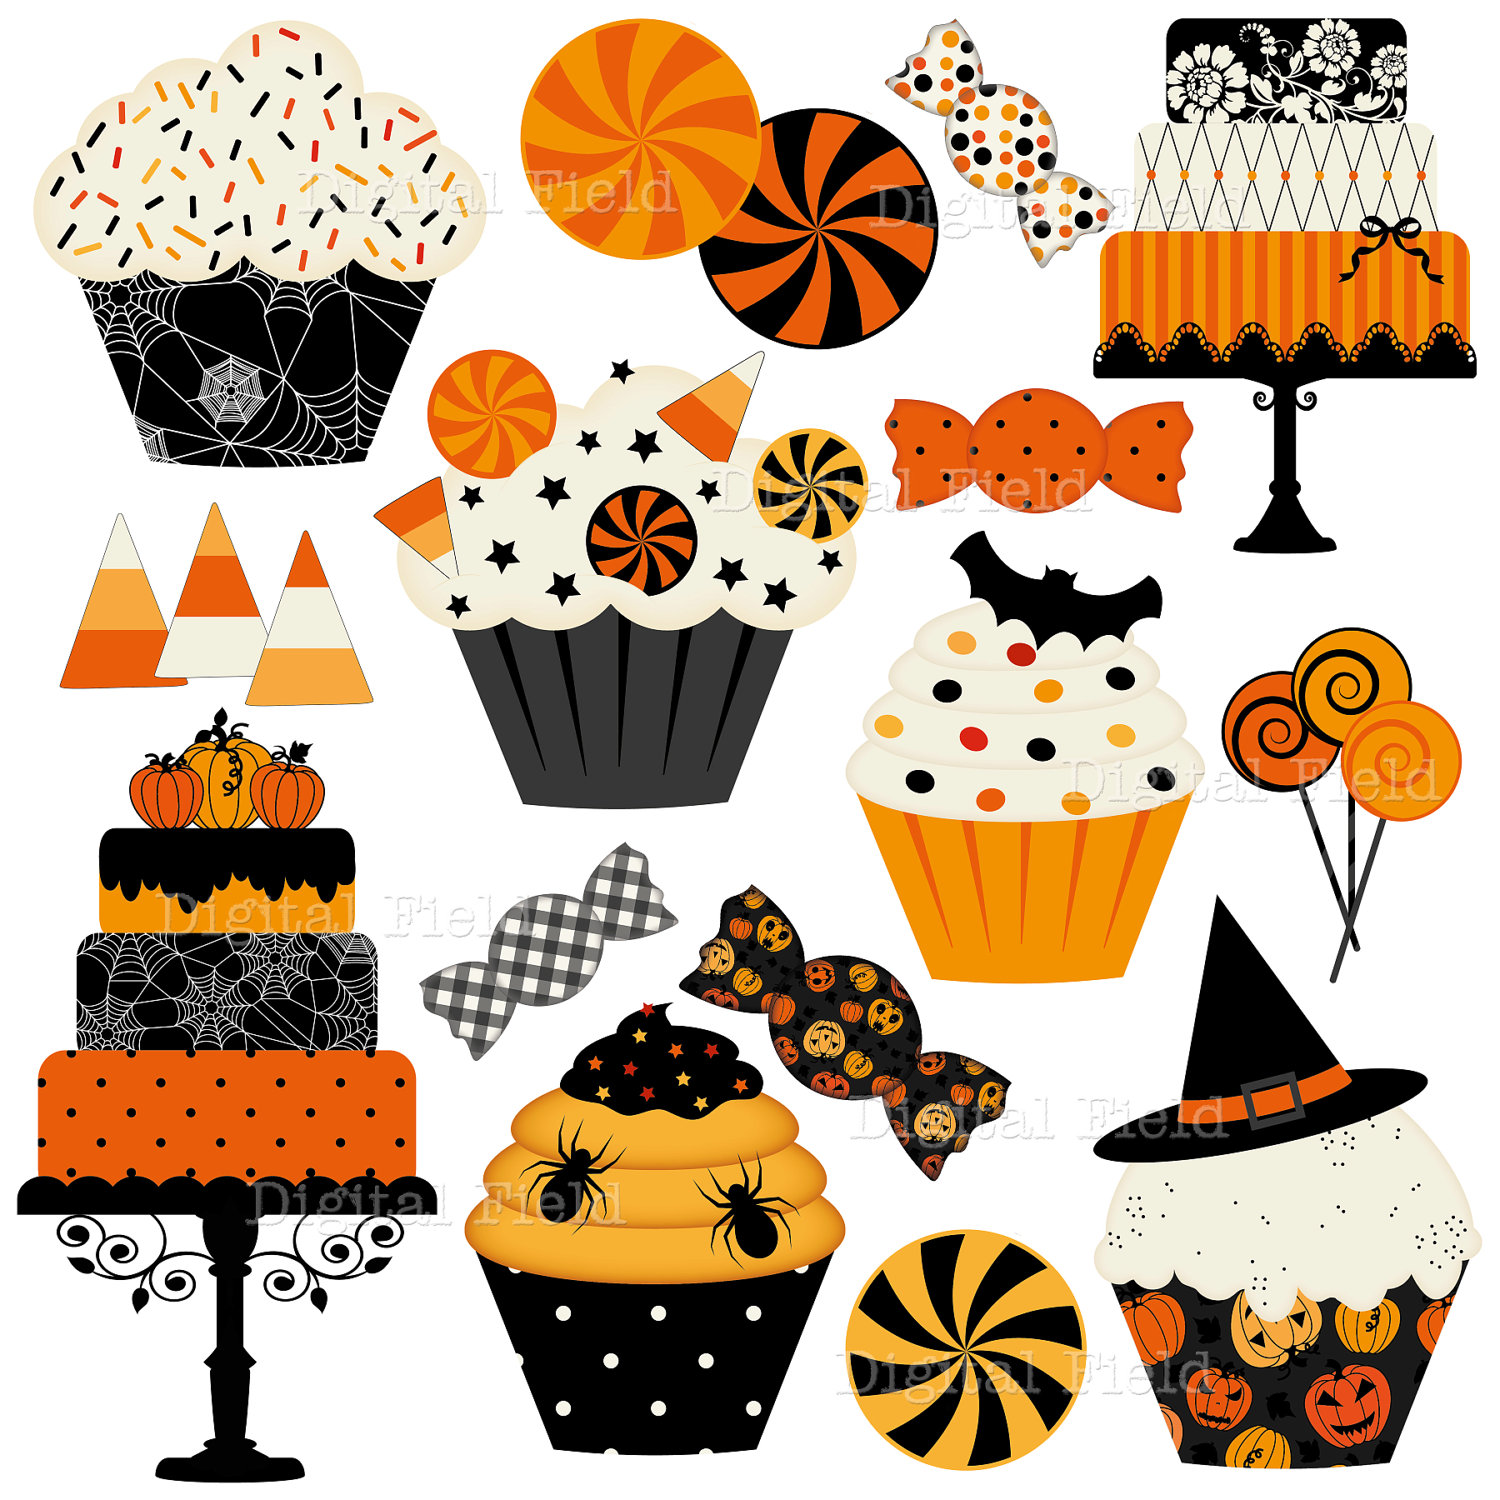 Halloweed fun and food clipart vector black and white stock Free Cool Halloween Images, Download Free Clip Art, Free Clip Art on ... vector black and white stock